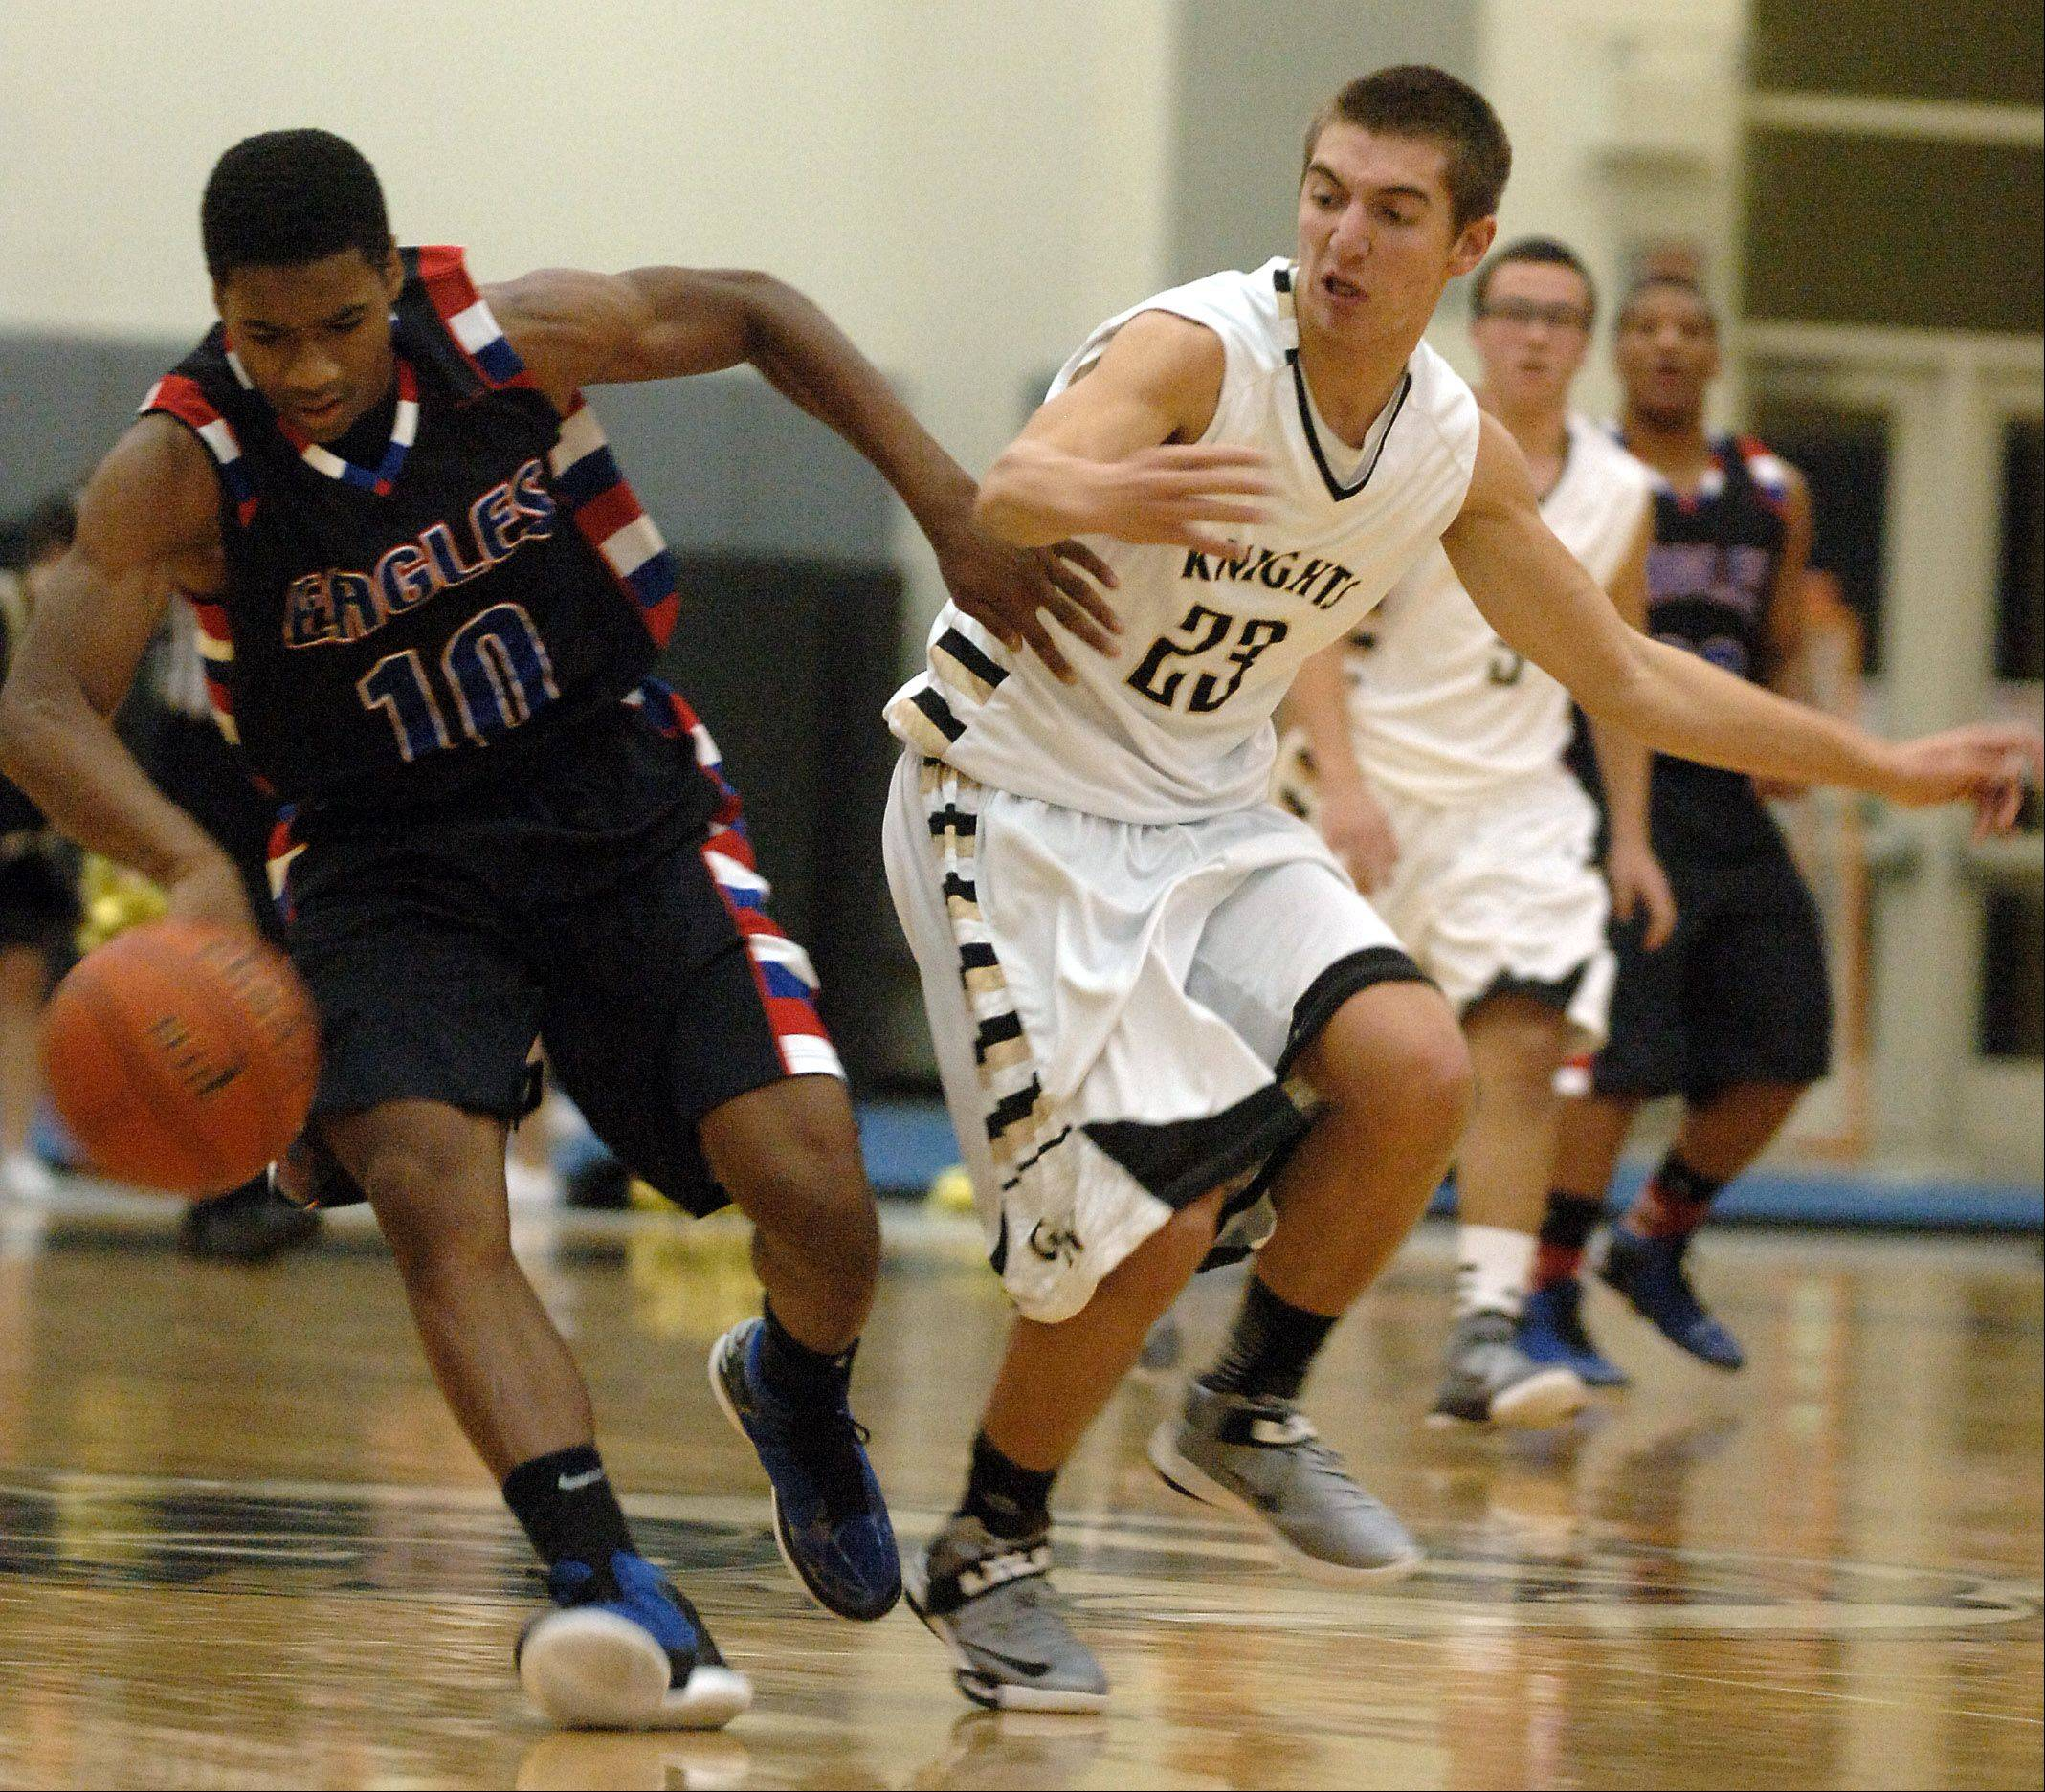 Lakes' Andrew Spencer, 10, and Grayslake North's Danny Mateling chase down a loose ball Friday in Grayslake.